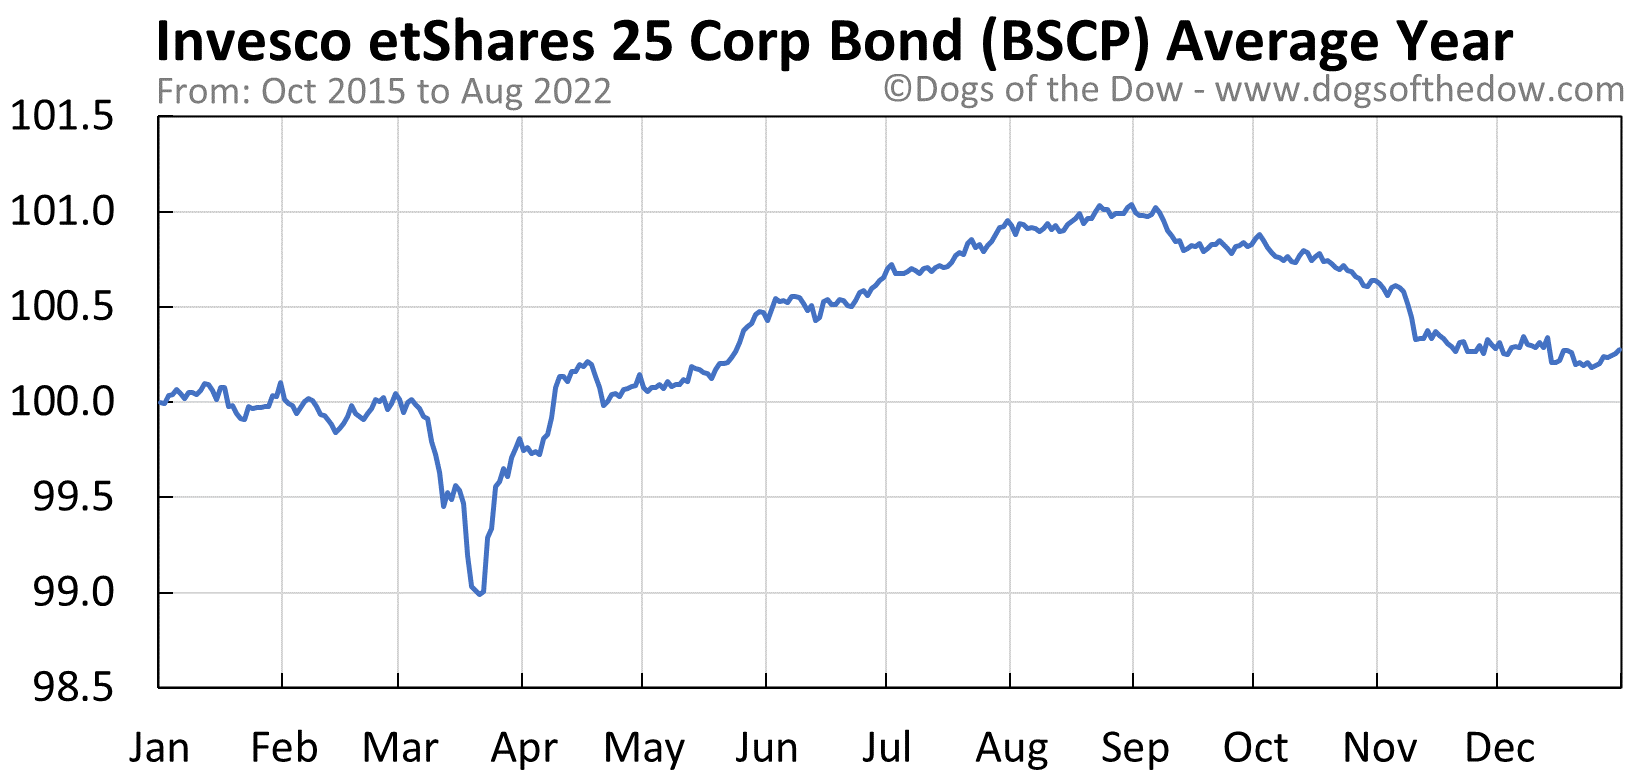 BSCP average year chart